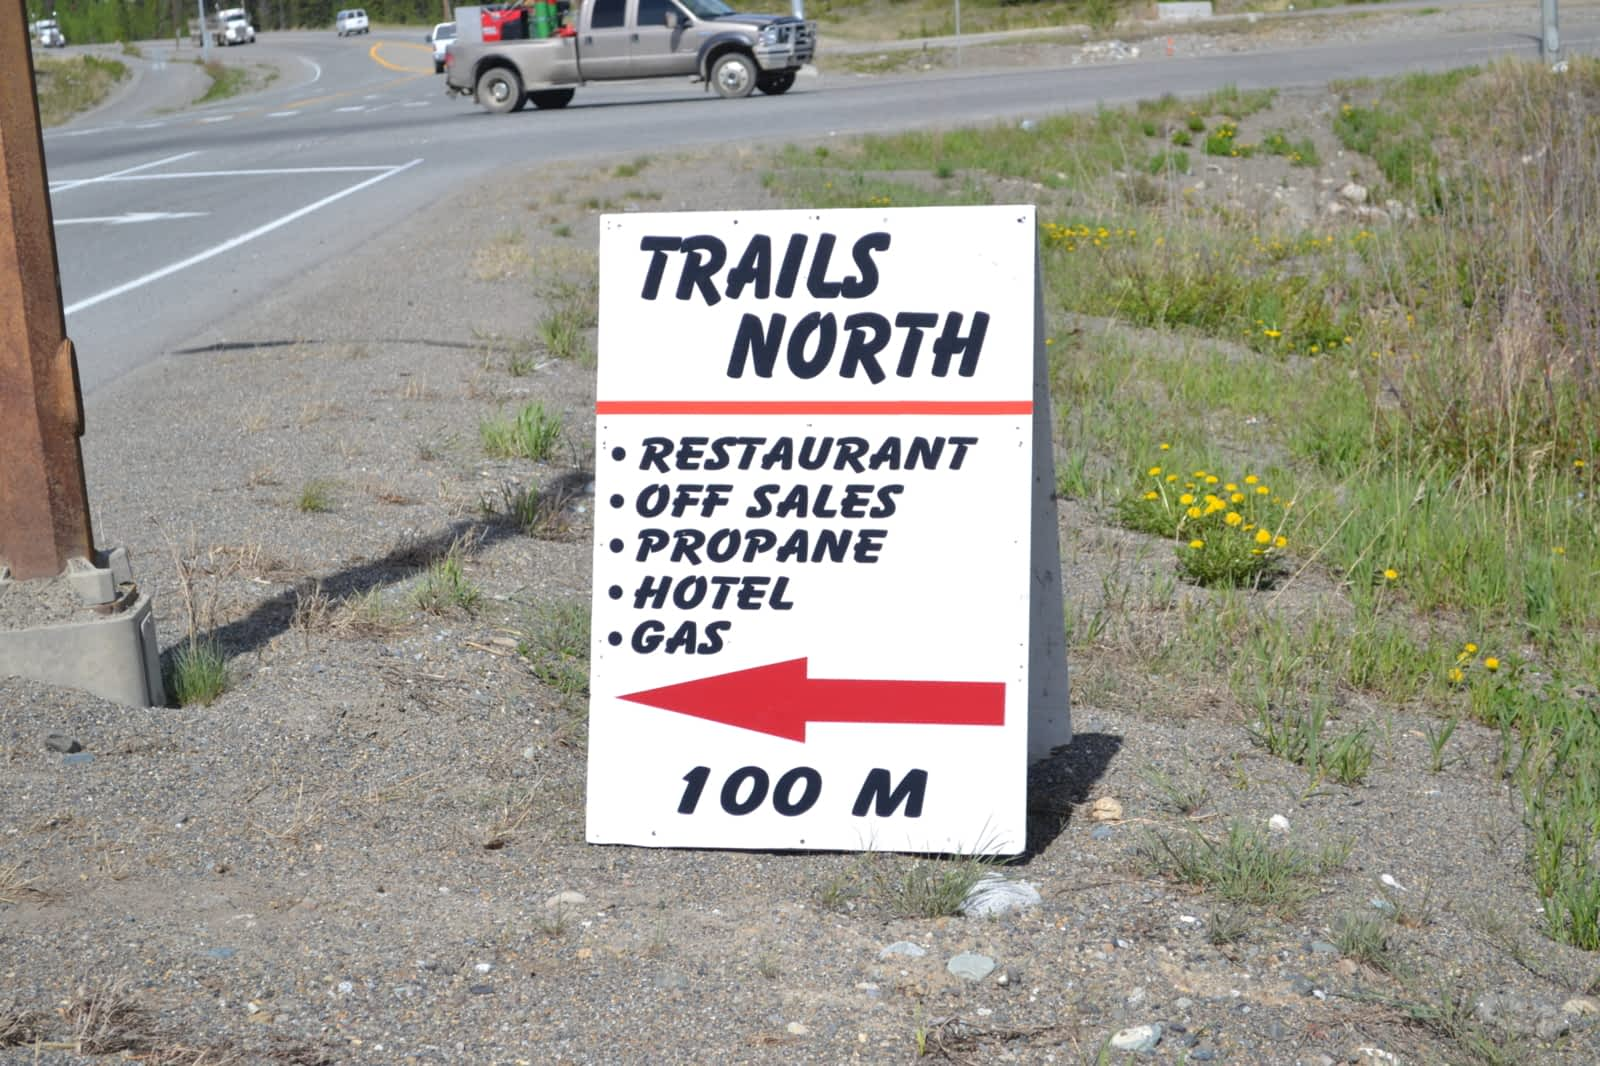 Trails North